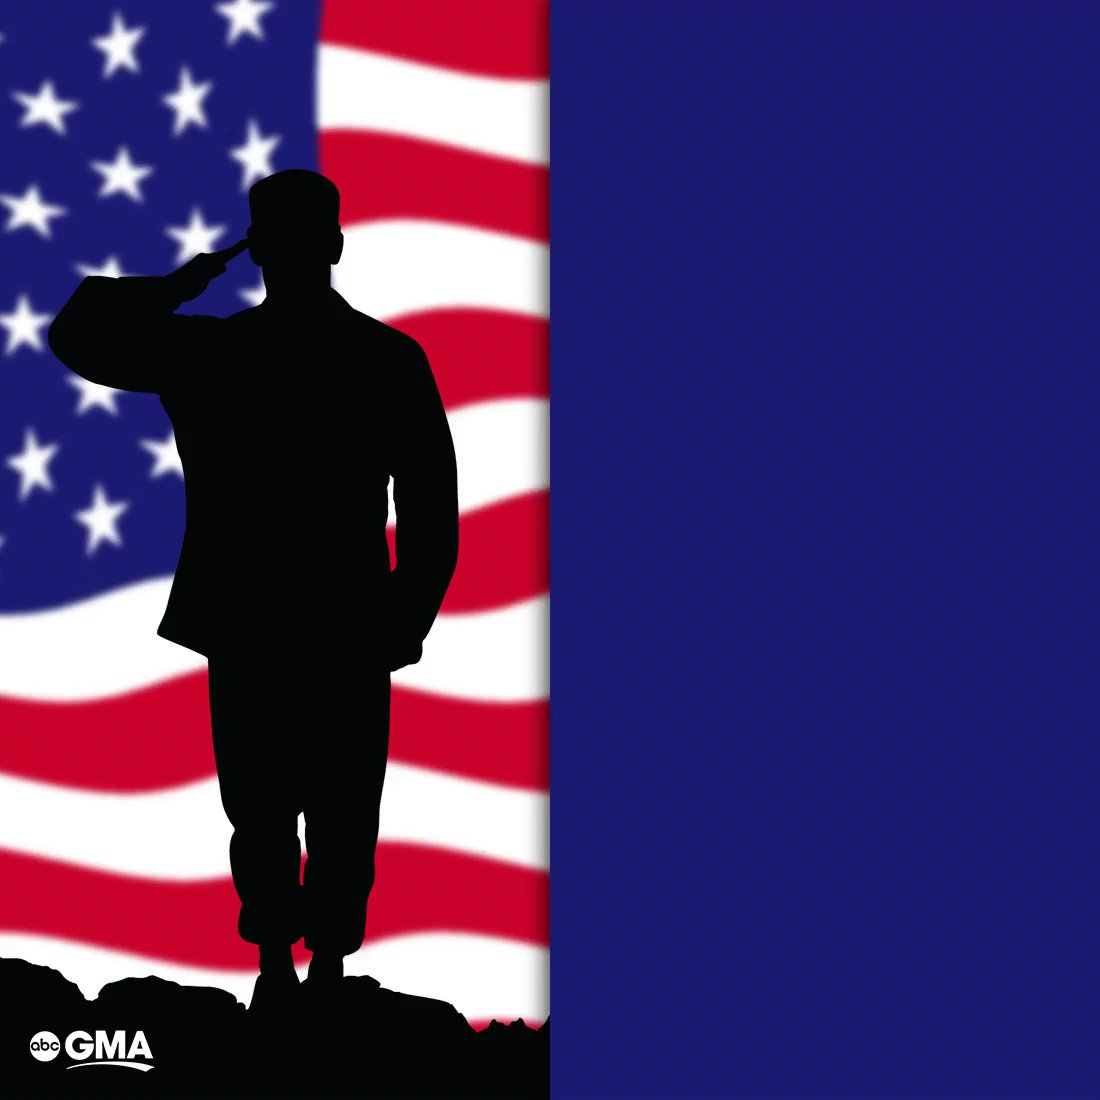 On this Memorial Day, we remember the fallen who have served our country.